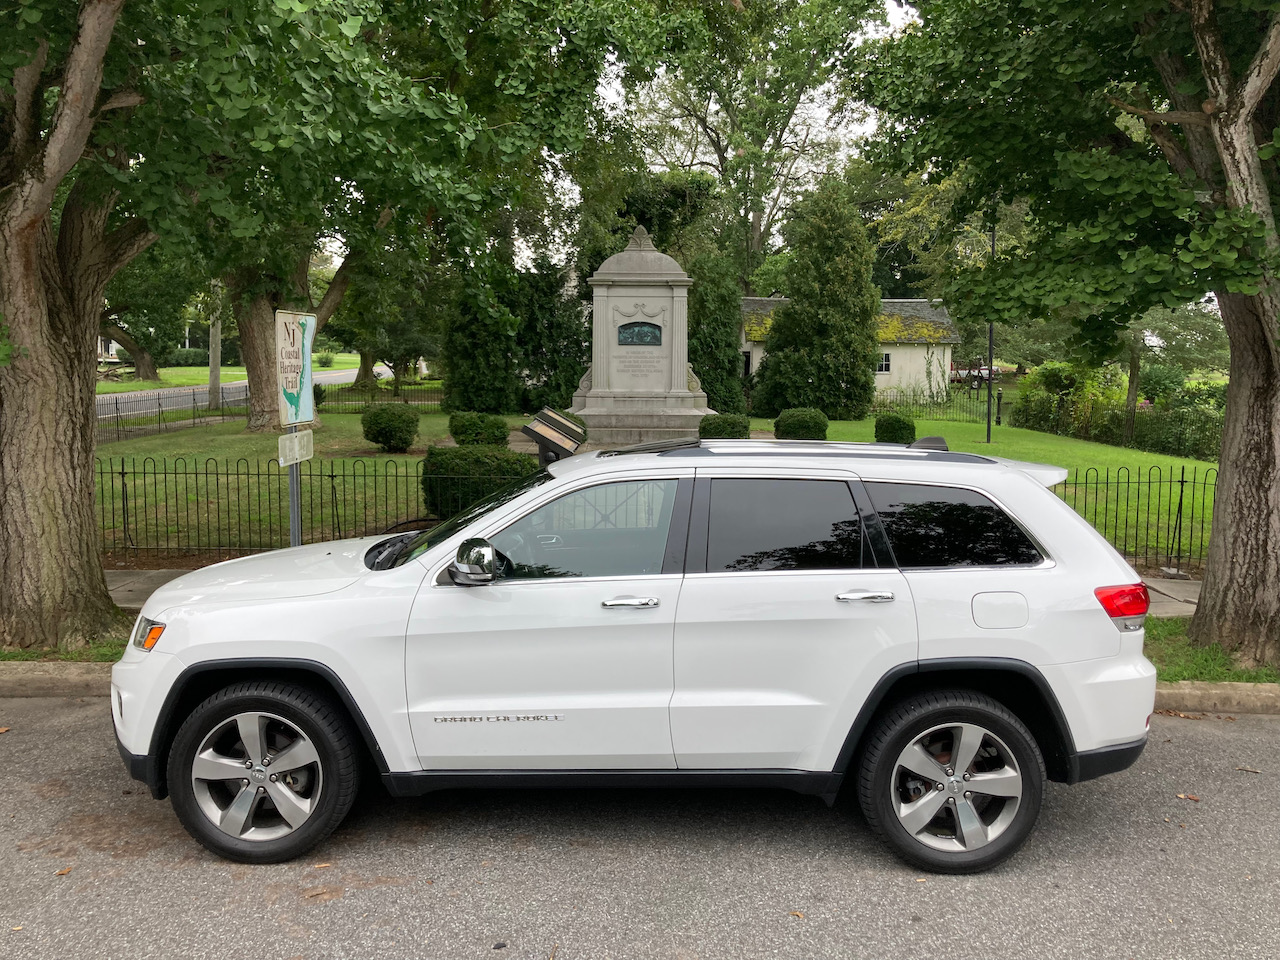 2014 Jeep Grand Cherokee parked in front of NJ Tea Party Monument.